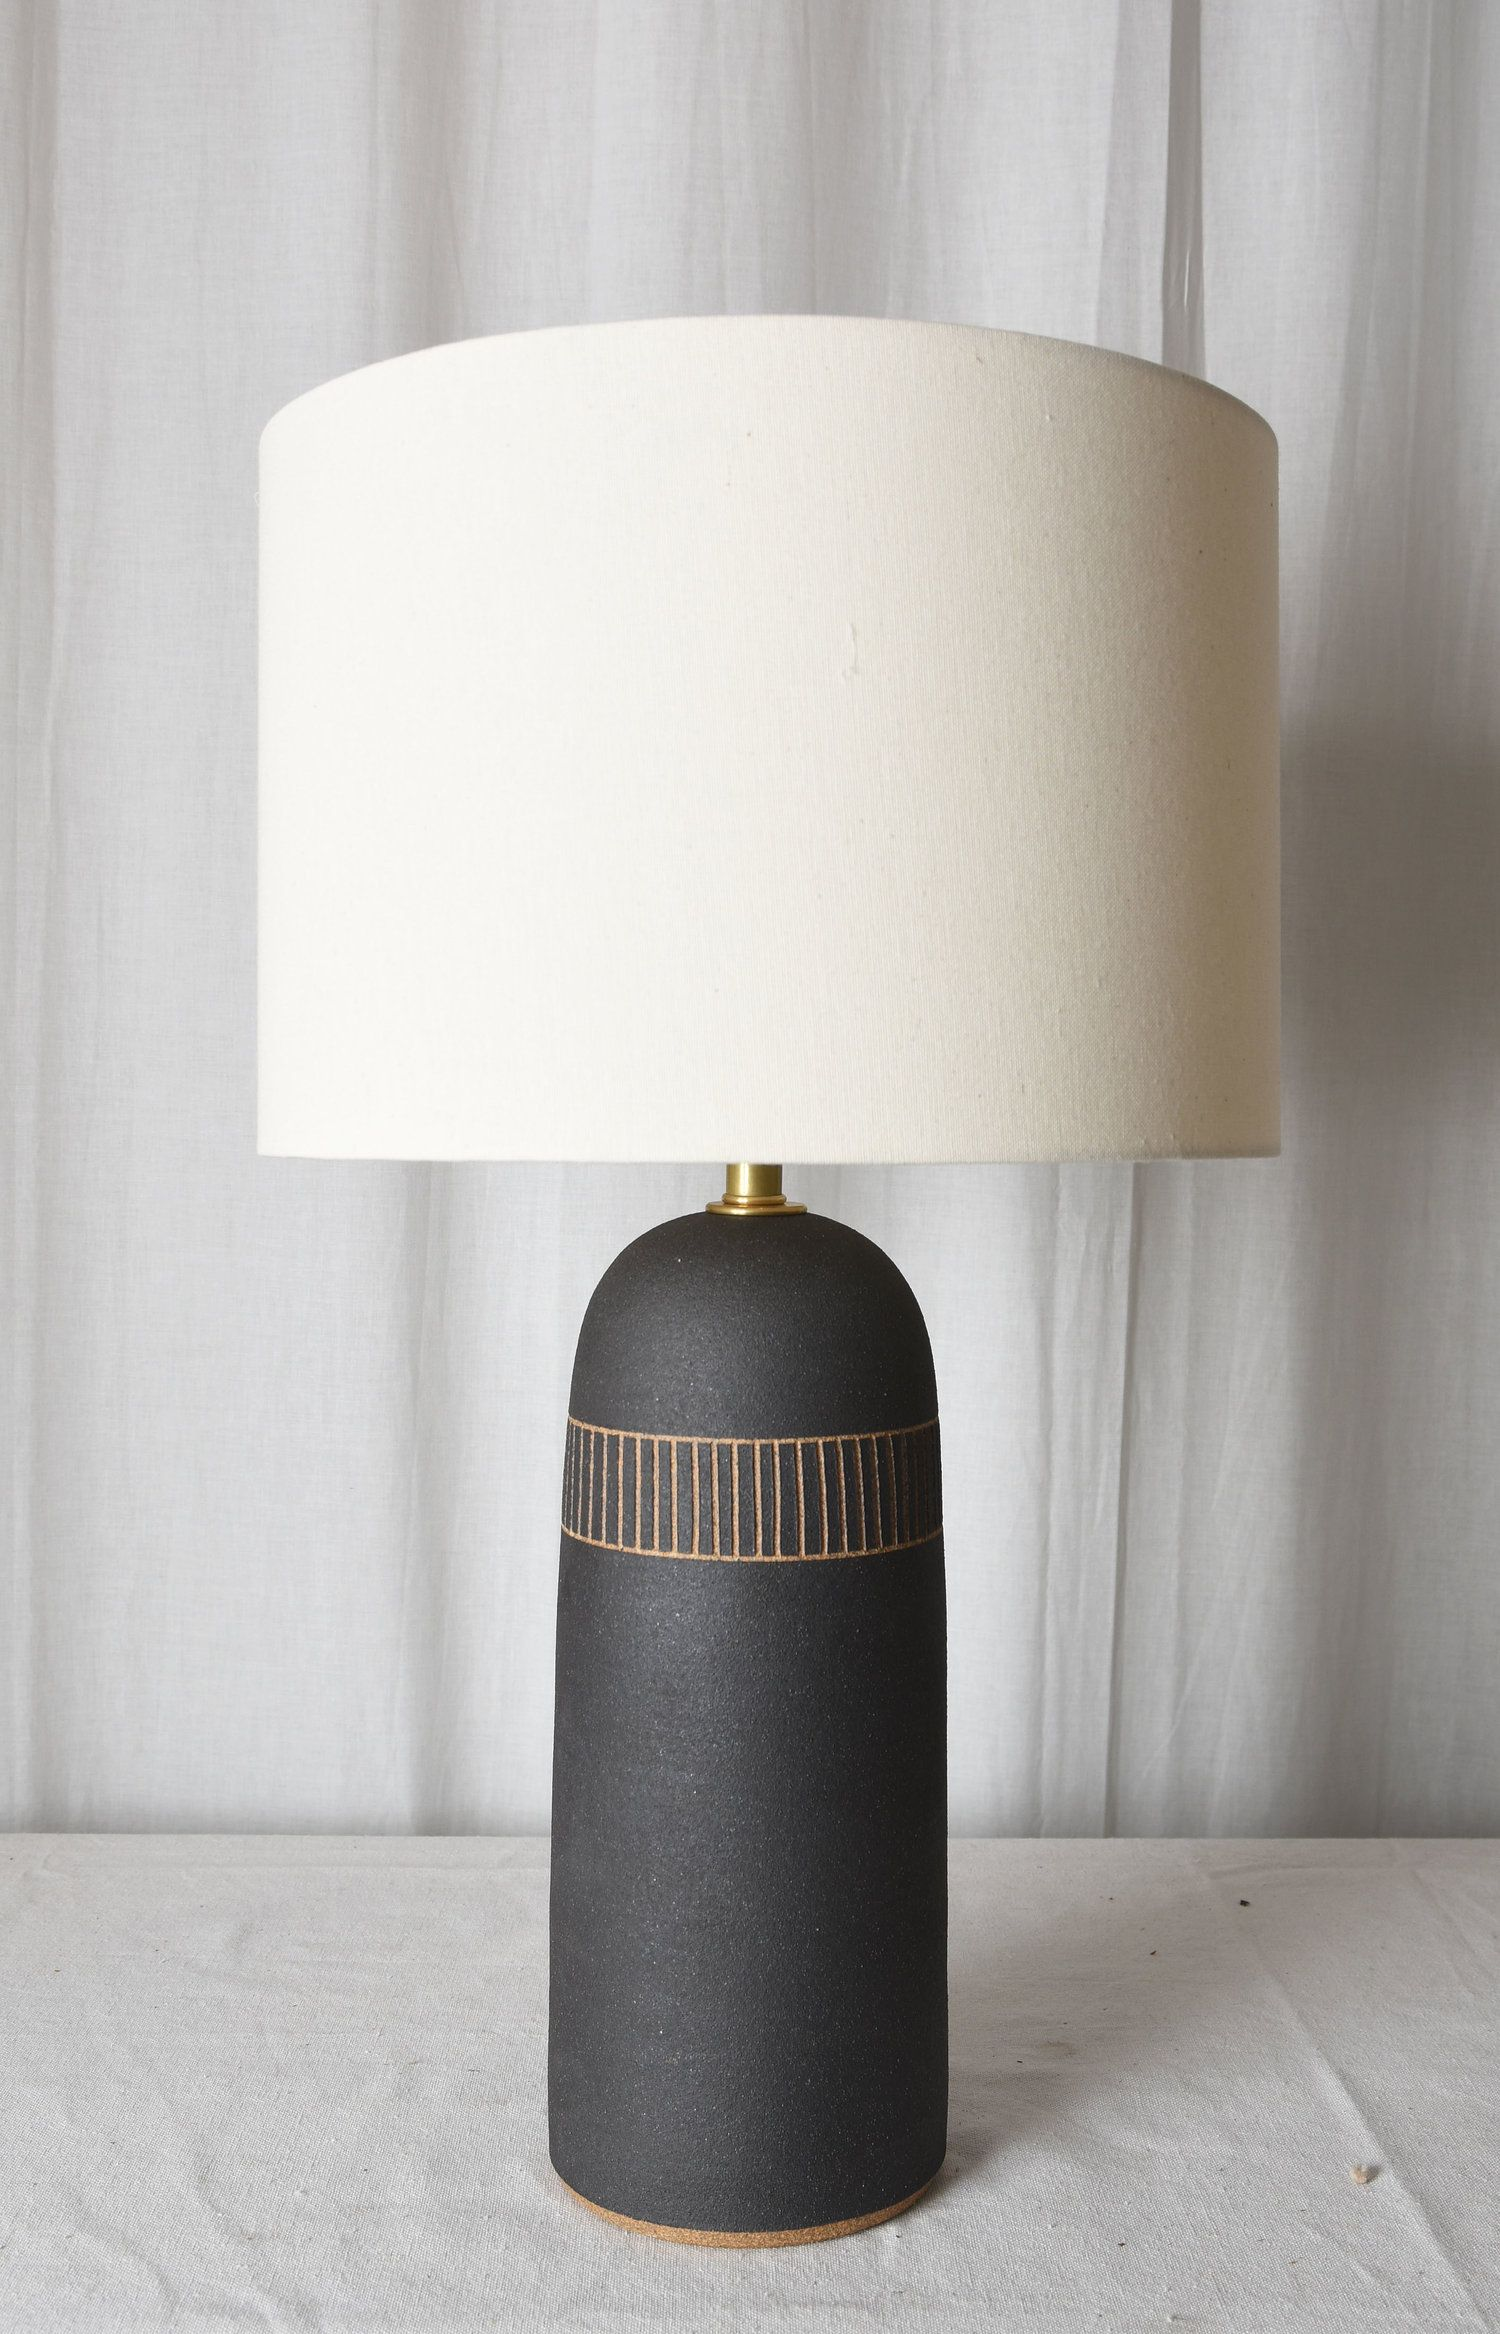 Tall Etched Lamps Mmhp Ceramics In 2020 Tall Table Lamps Lamp